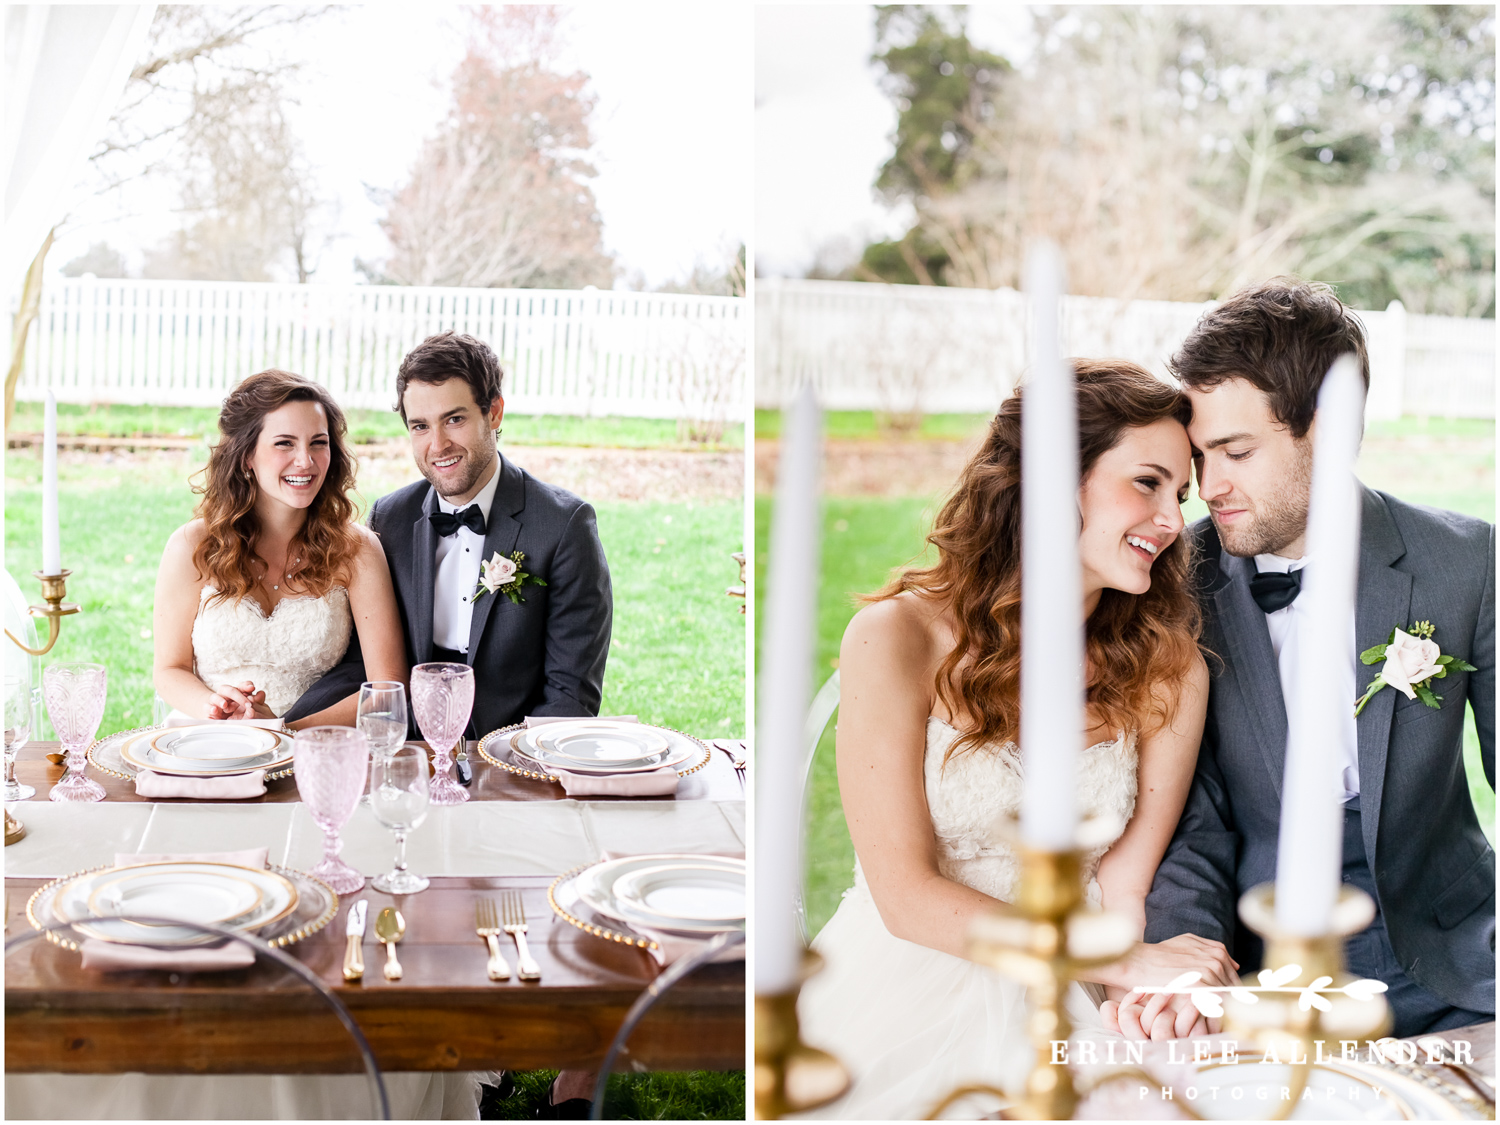 Couple_at_Sweetheart_table